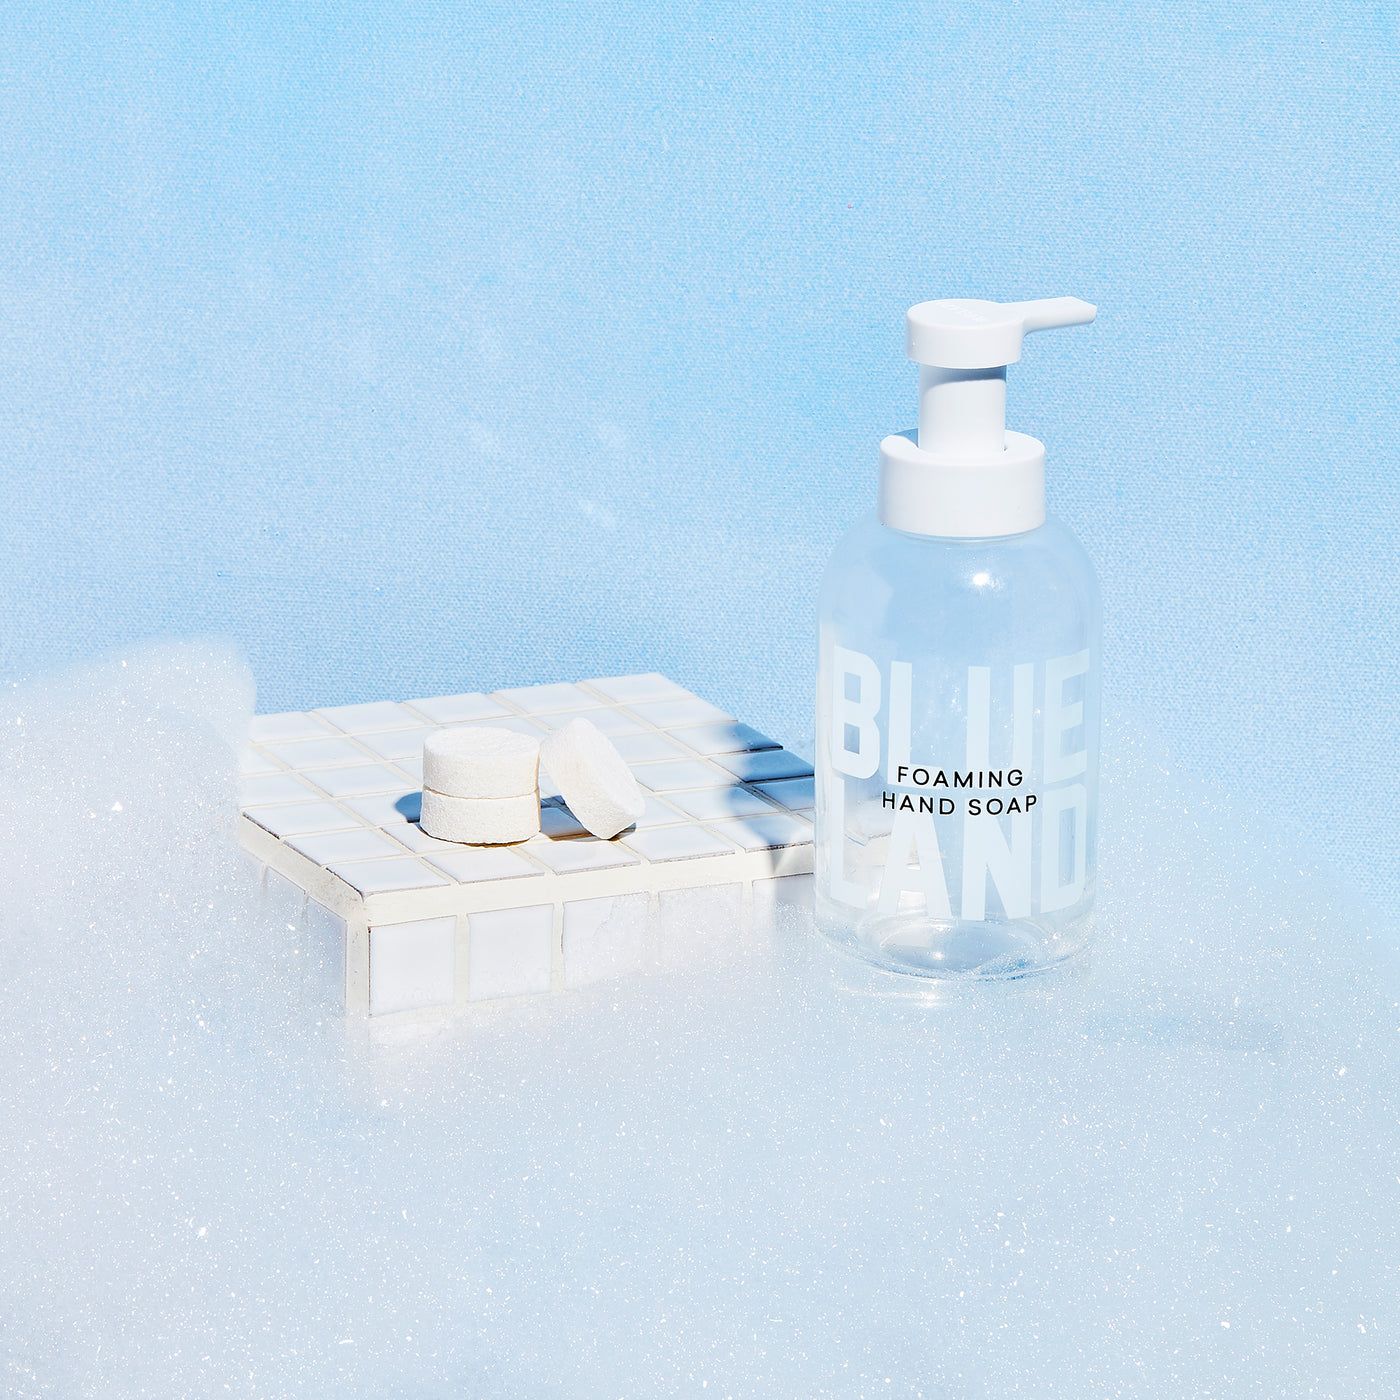 Glass hand soap bottle in suds next to white tile with 3 hand soap tablets placed on top.